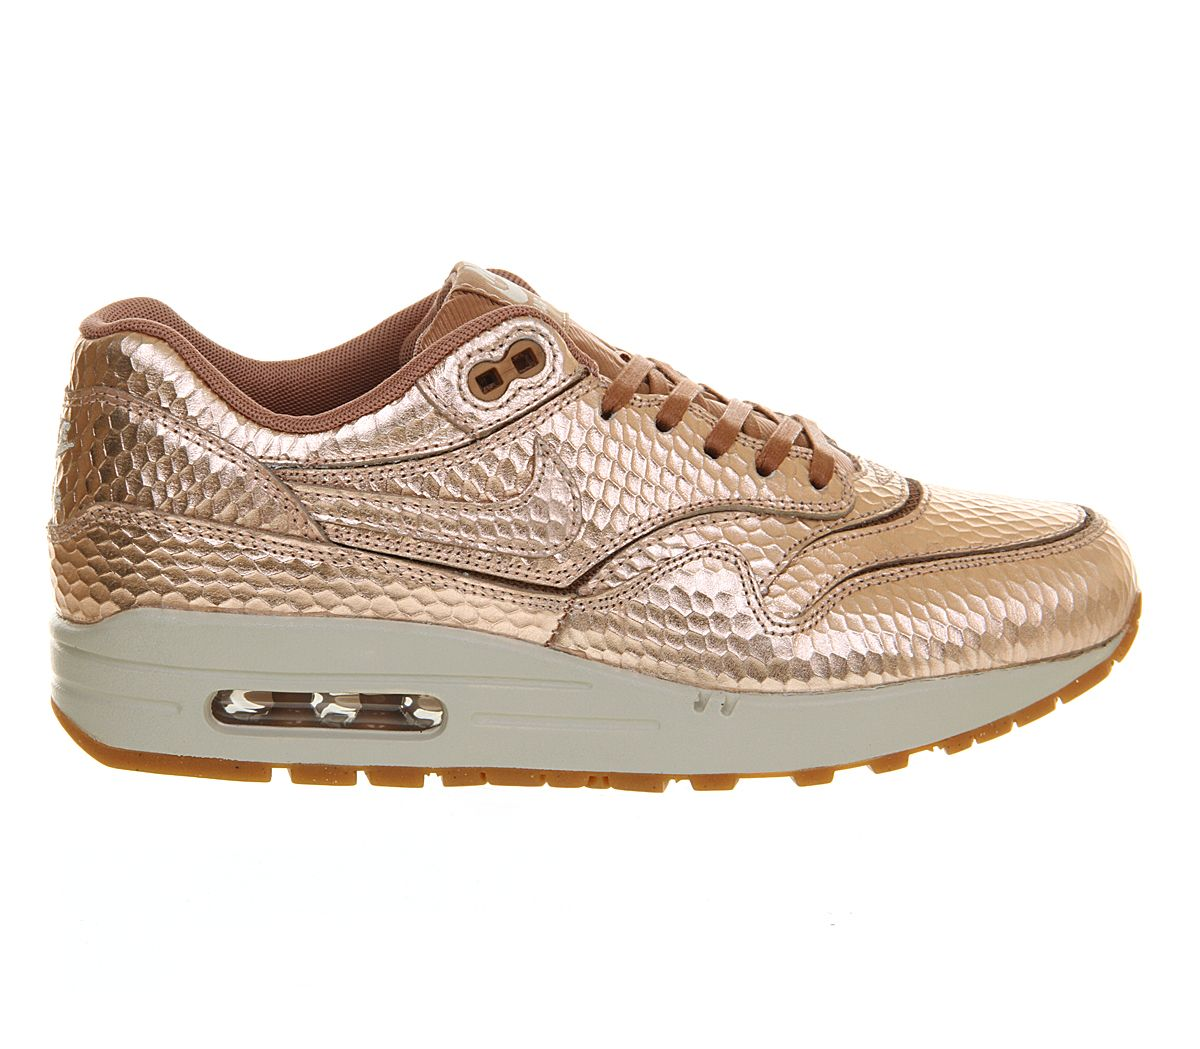 hot sale online 7304f 27edf Nike Air Max 1 (l) Bronze Metallic Cut Out - Hers trainers